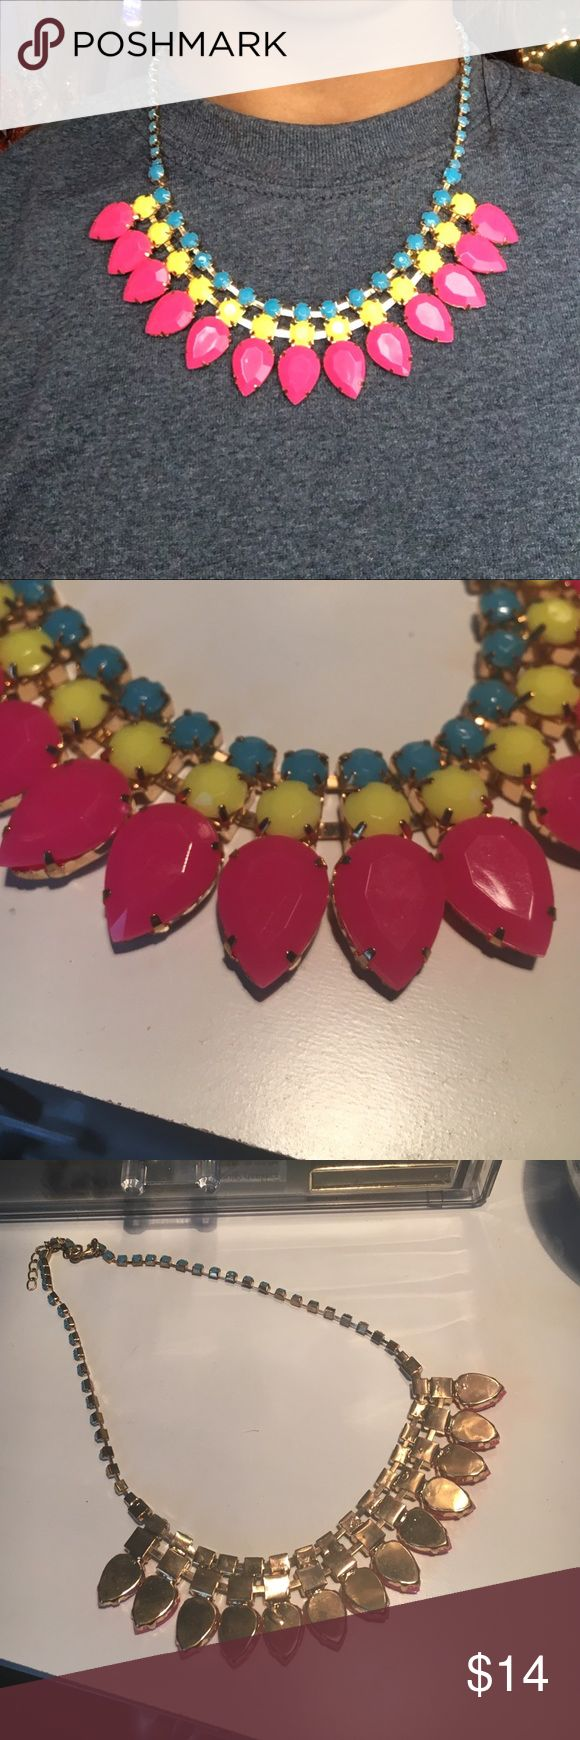 Neon statement necklace Neon pink, yellow, and blue. Very vibrant and makes a statement! Great condition. Forever 21 Jewelry Necklaces